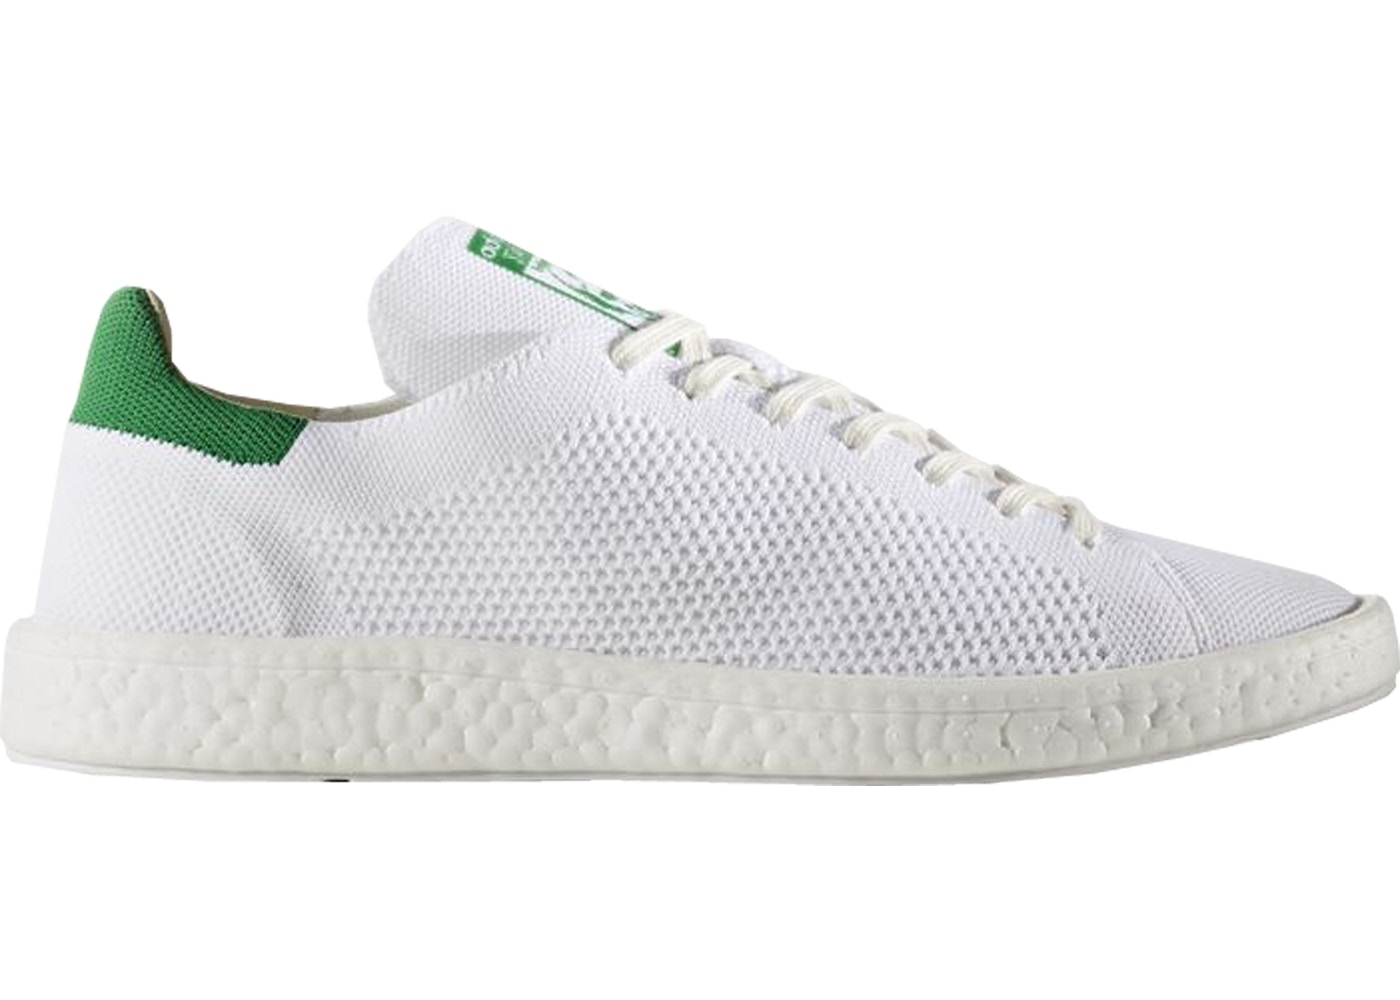 online retailer 73b1b 23cf2 adidas Stan Smith Boost Primeknit White Green